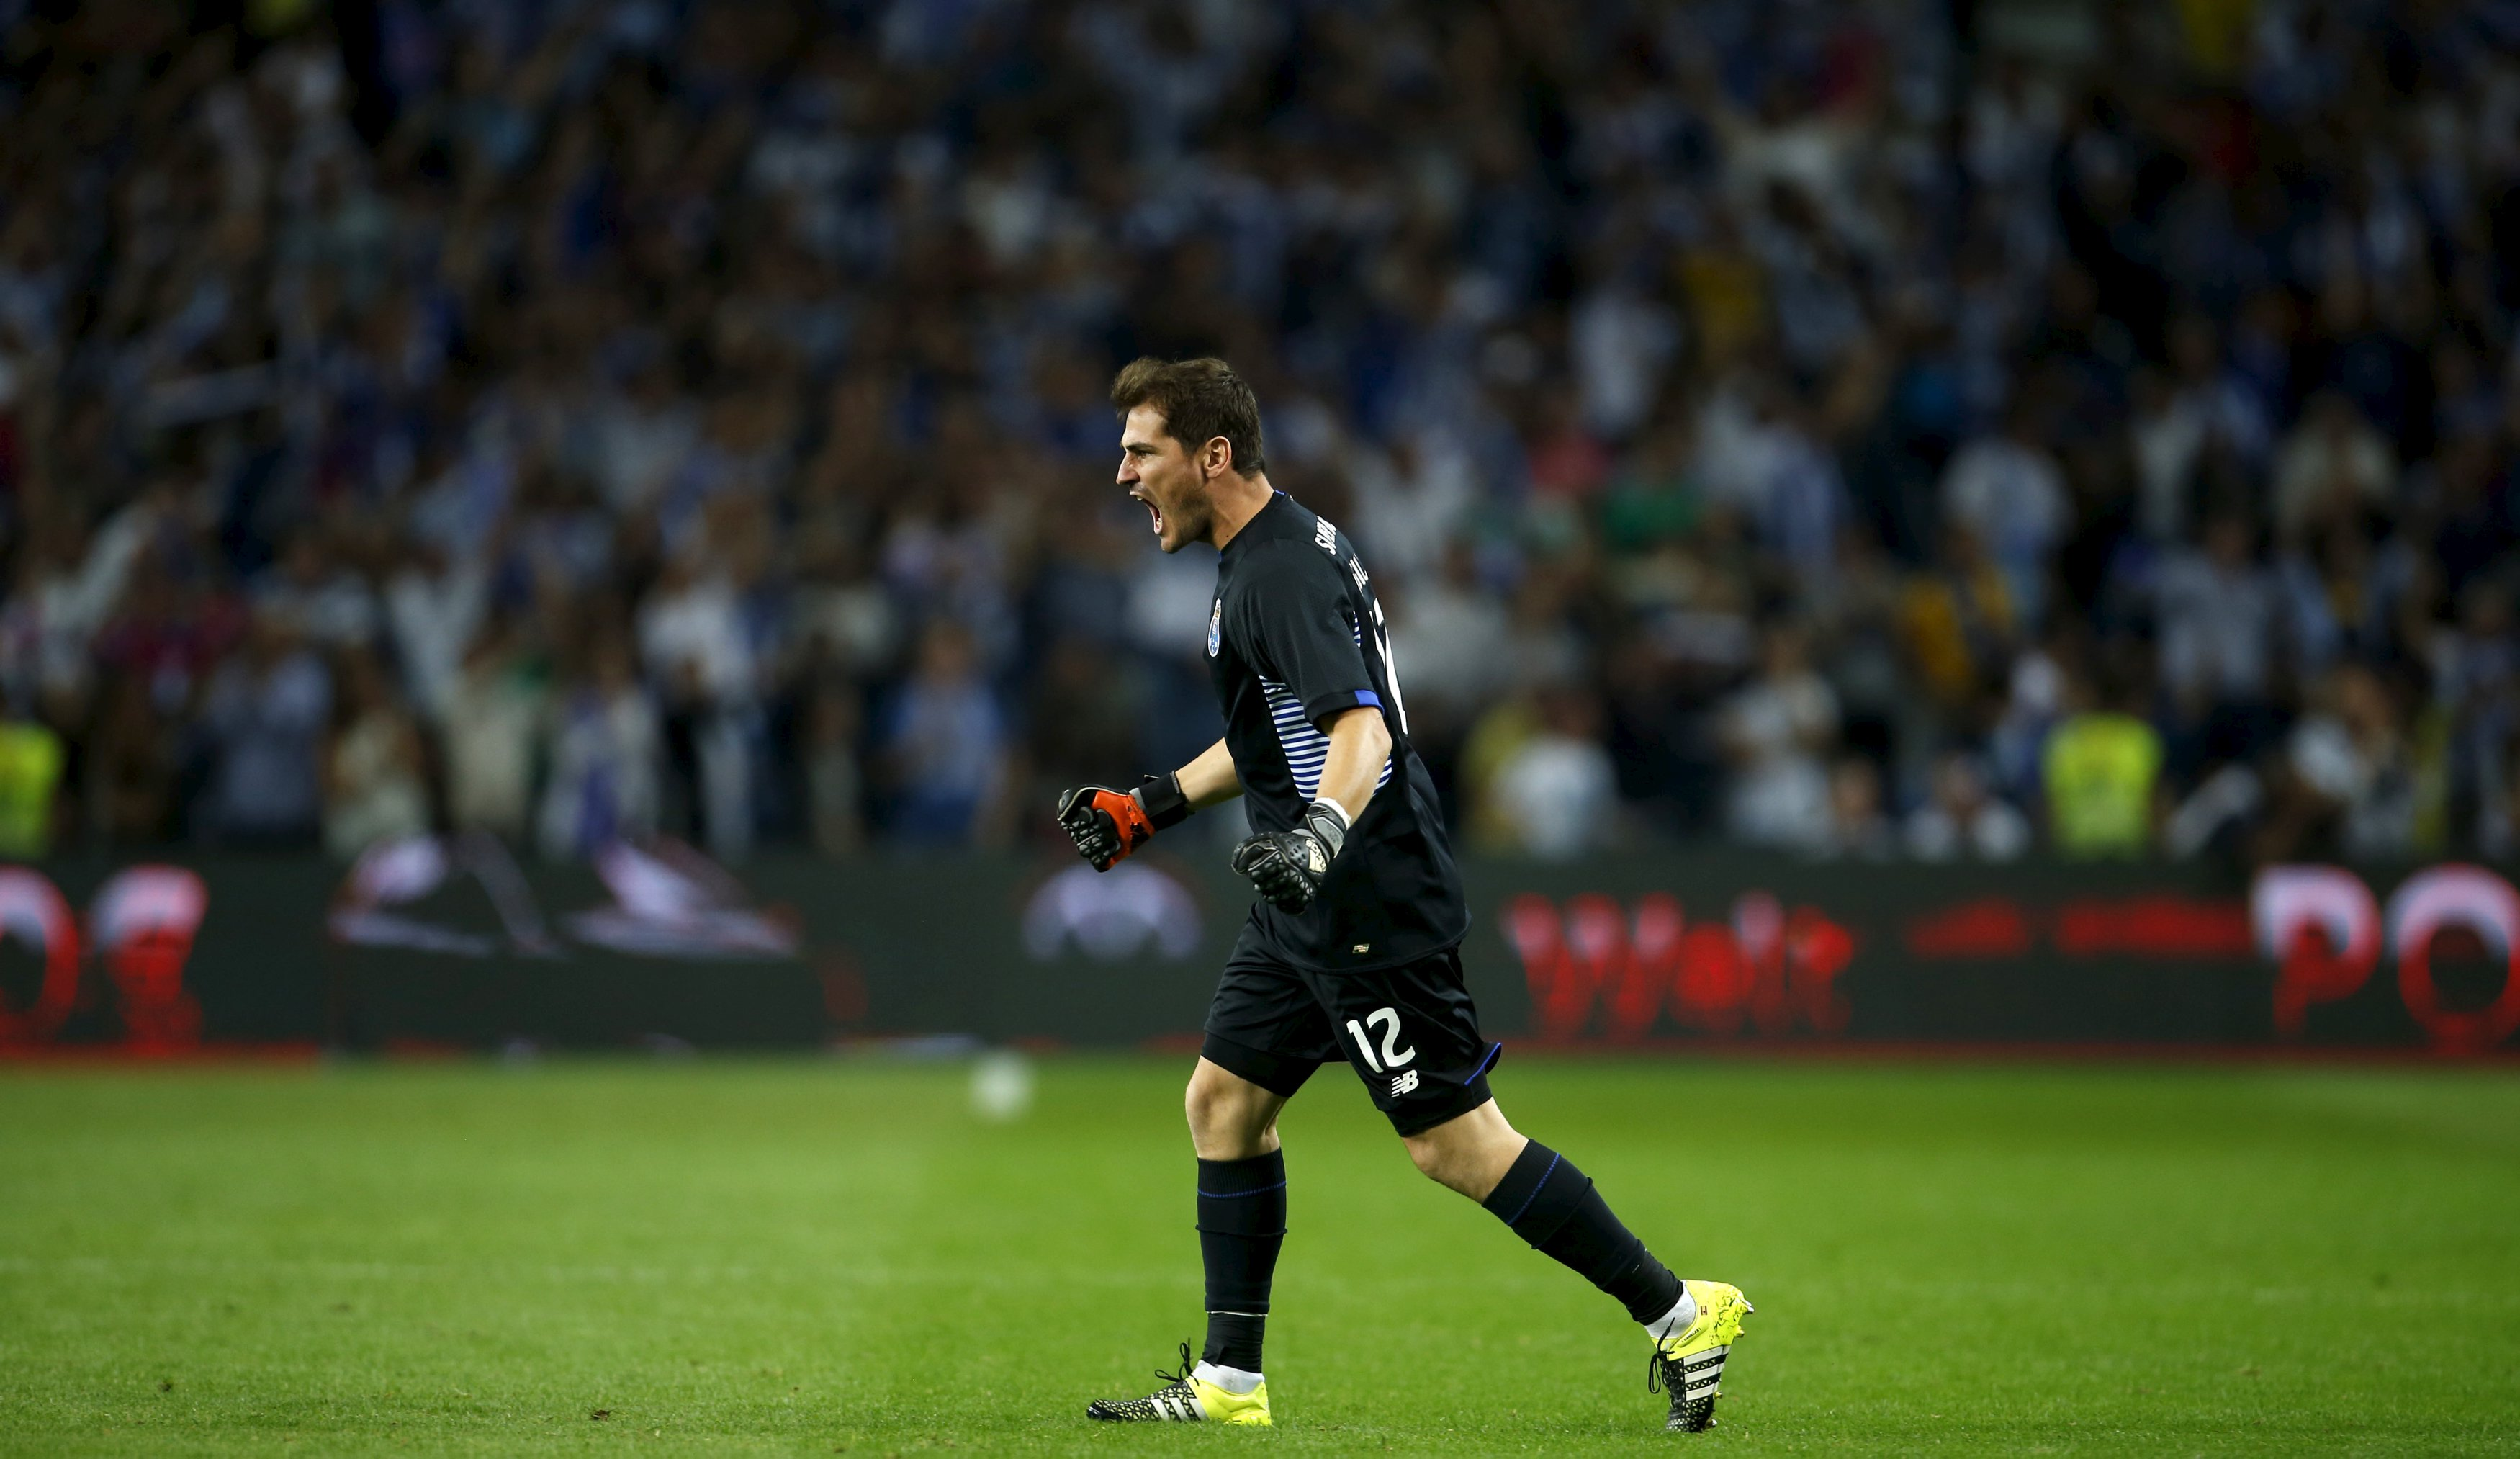 Porto's goalkeeper Iker Casillas celebrates  the goal of his teammate Andre Andre during their Portuguese premier league soccer match against Benfica at Dragao stadium in Porto, Portugal September 20, 2015.  REUTERS/Rafael Marchante